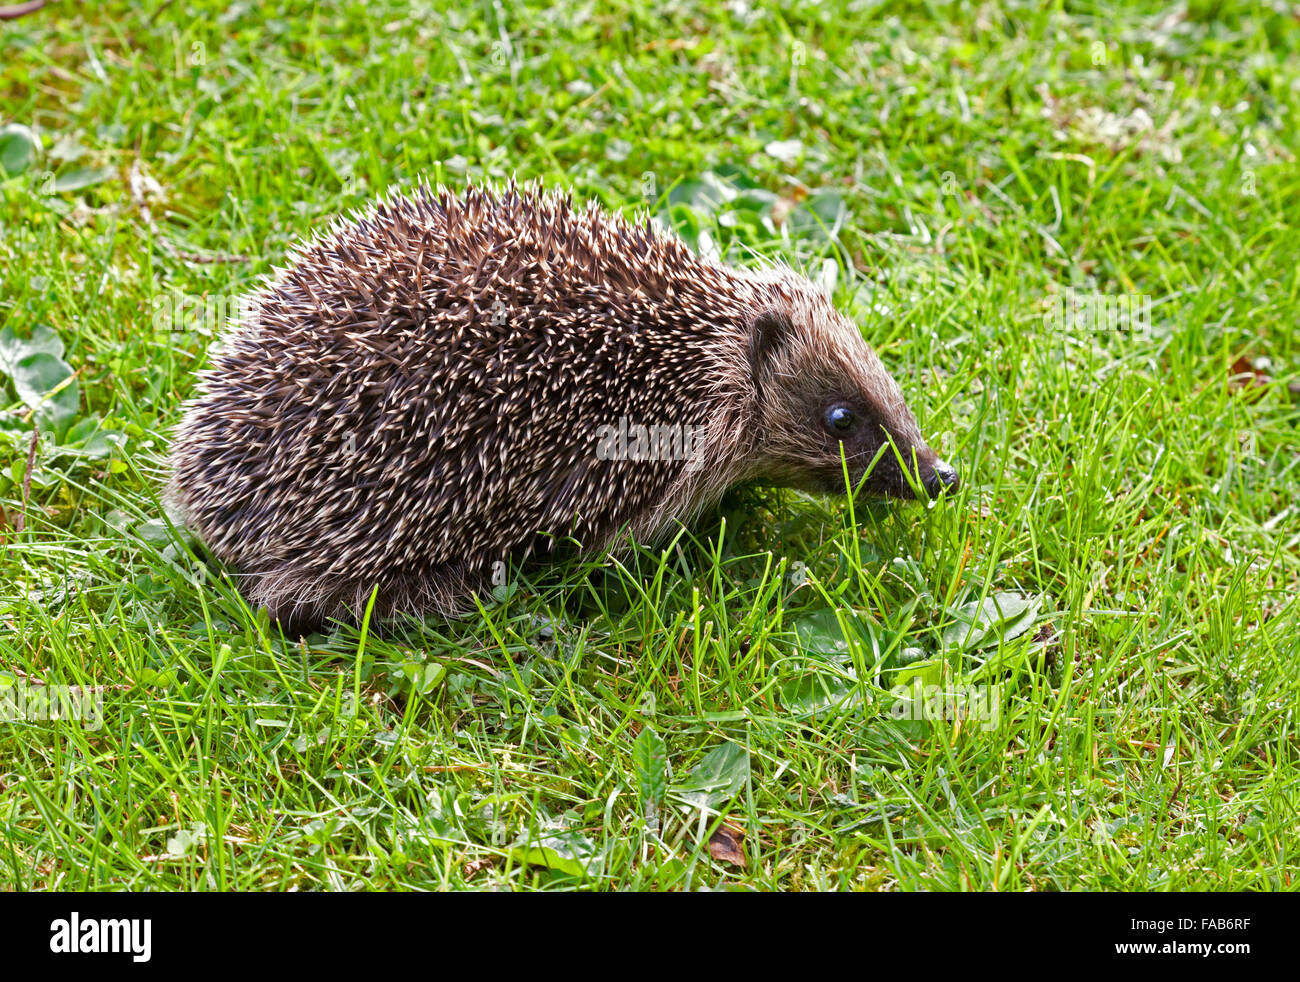 hedgehog on a lawn - Stock Image